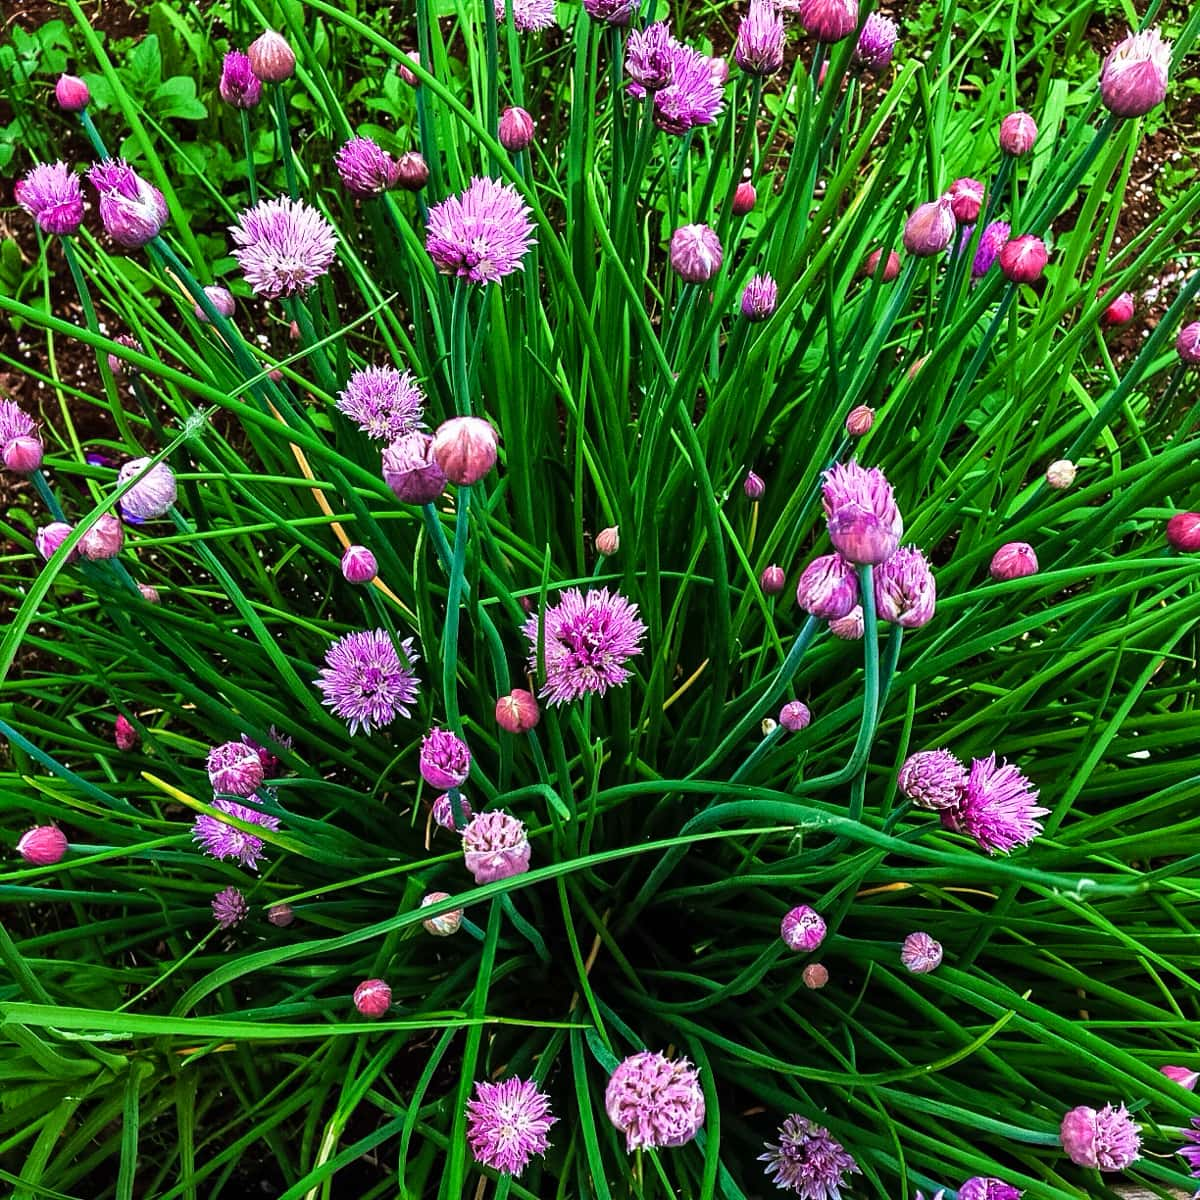 Planting an Edible Flower Garden: Chive Blossoms